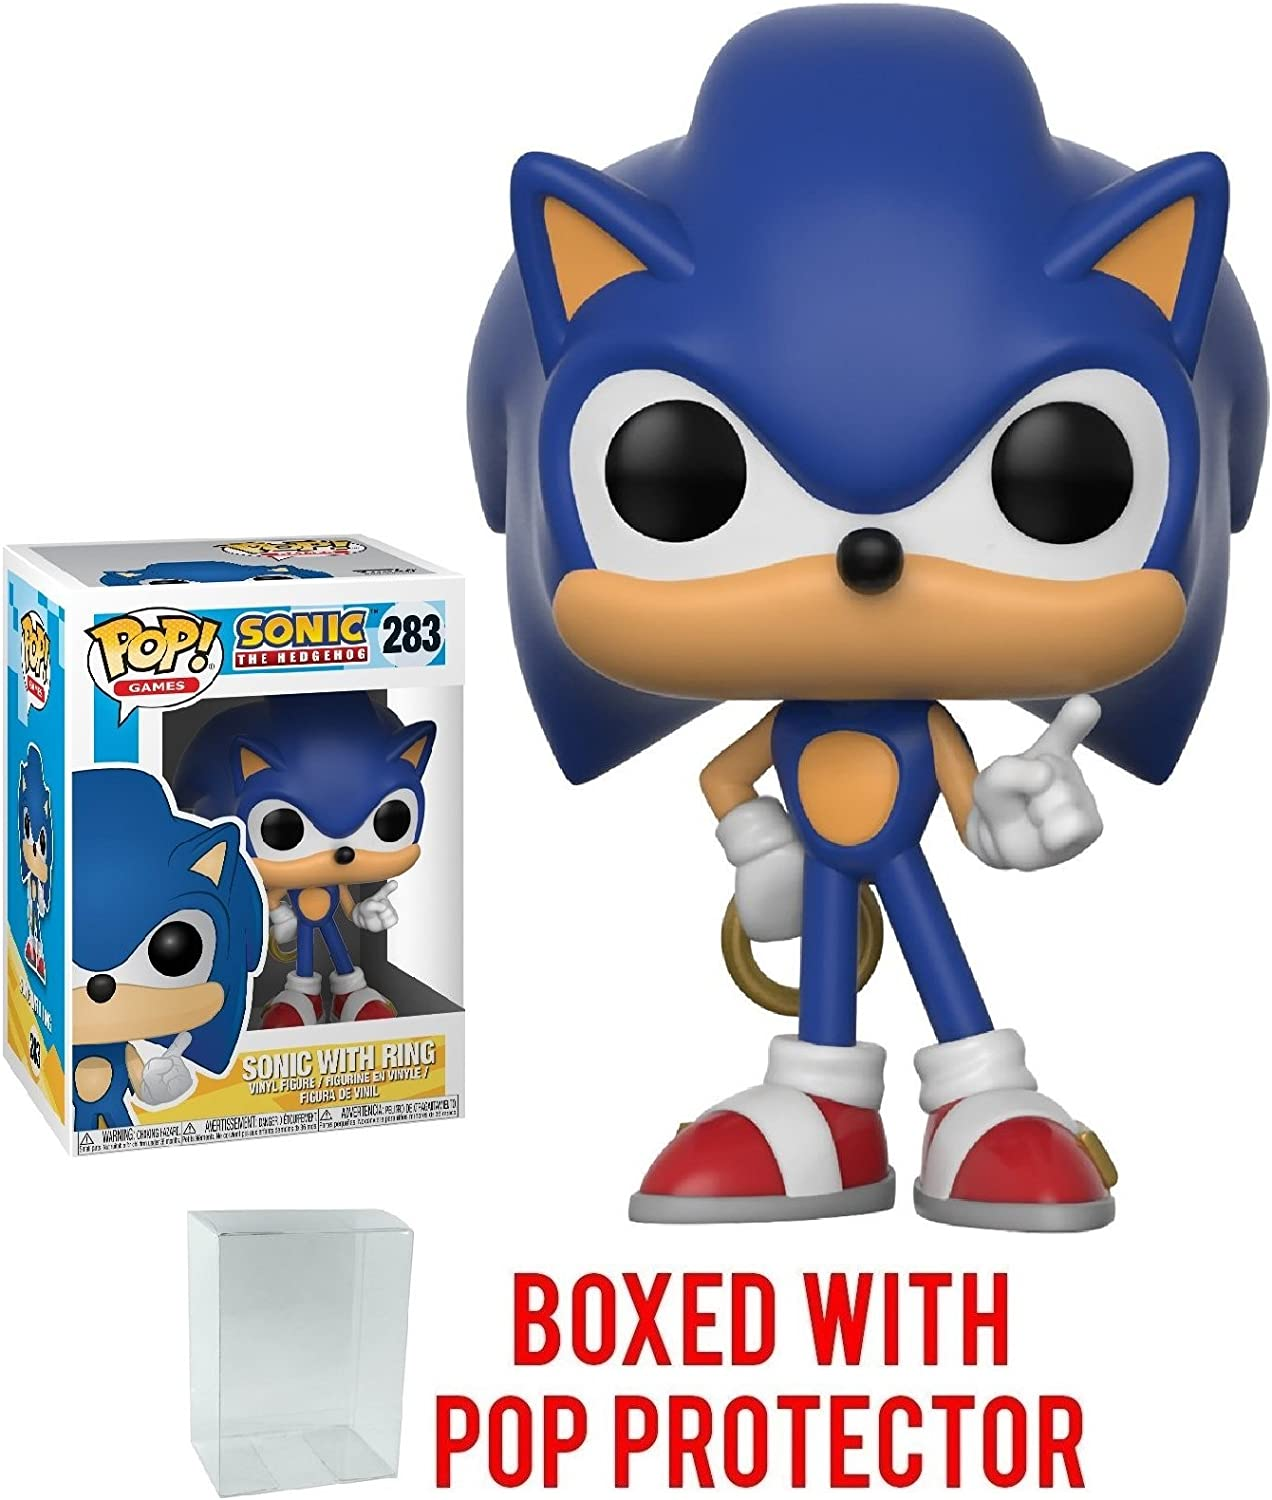 Amazon Com Funko Pop Games Sonic The Hedgehog Sonic With Ring Vinyl Figure Bundled With Pop Box Protector Case Toys Games